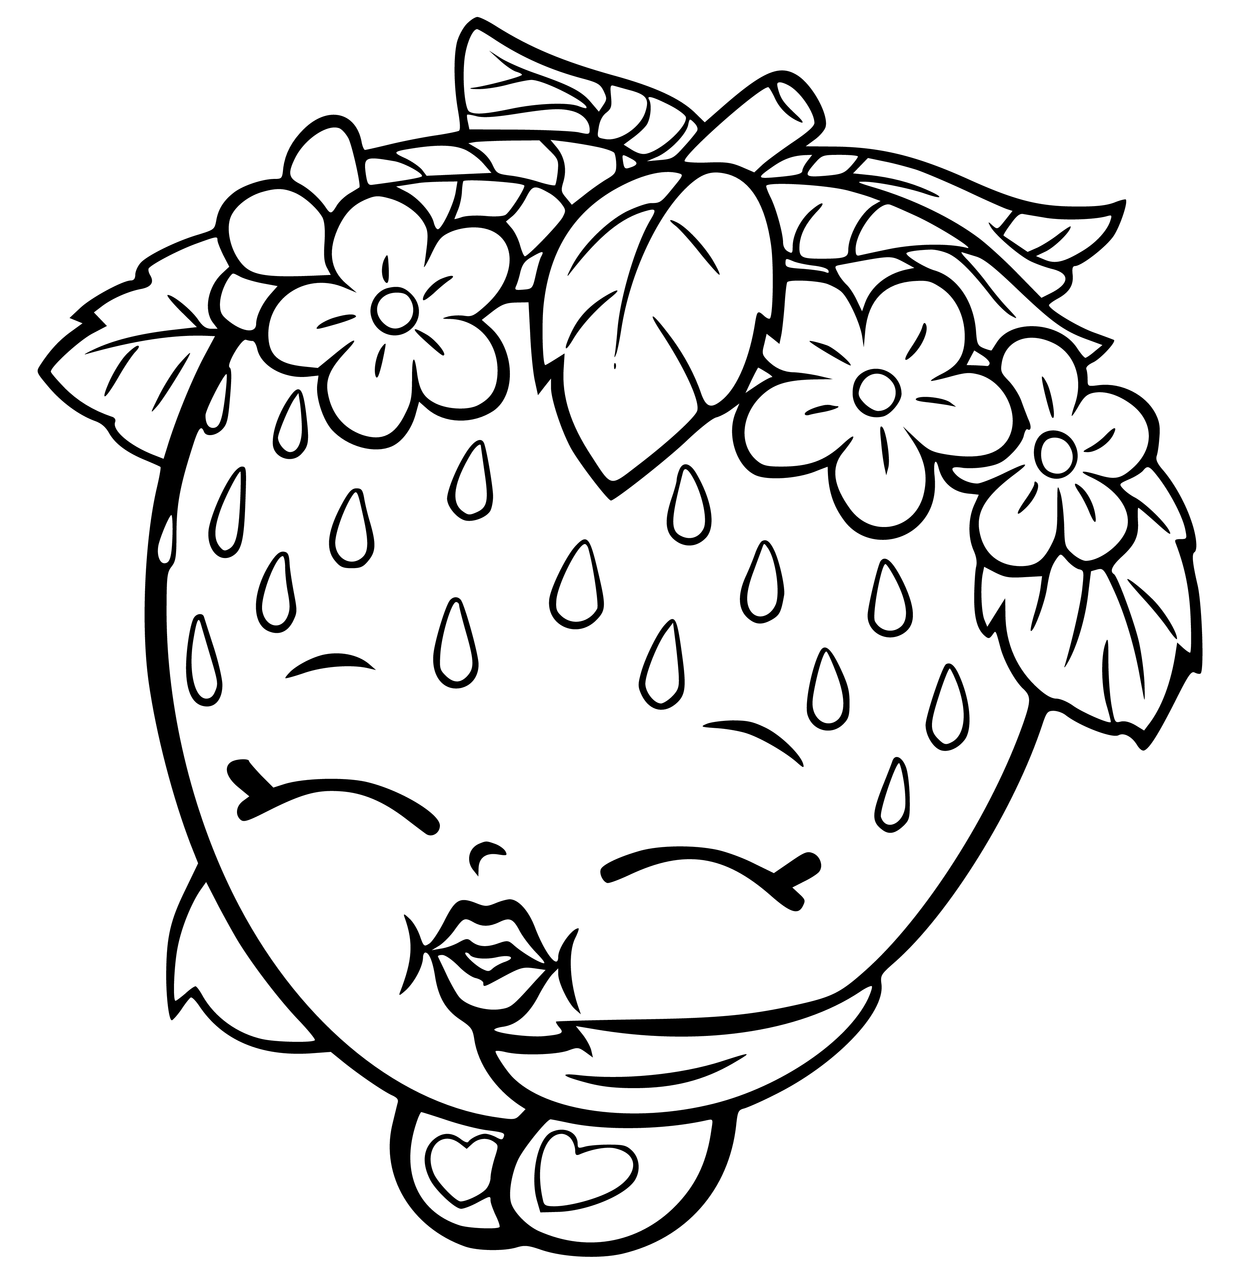 shopkin coloring pictures shopkins coloring pages to print out at getdrawings free pictures coloring shopkin